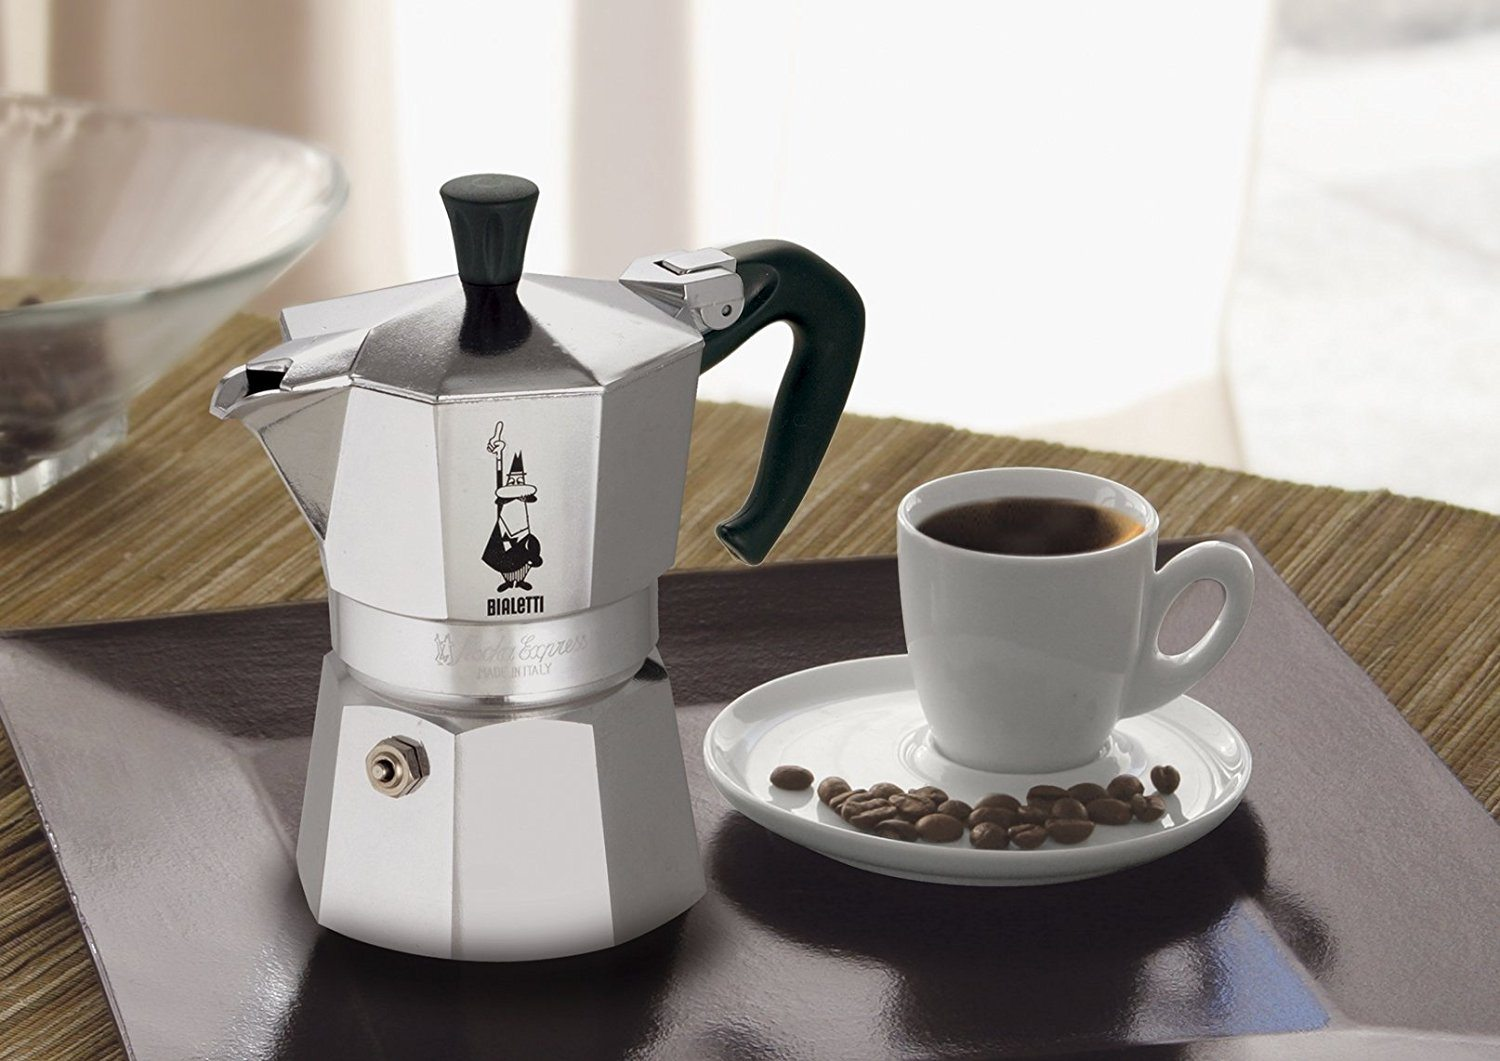 monsieur_cafe_guide_bien_choisir_machine_cafe_machine_manuelle_italienne